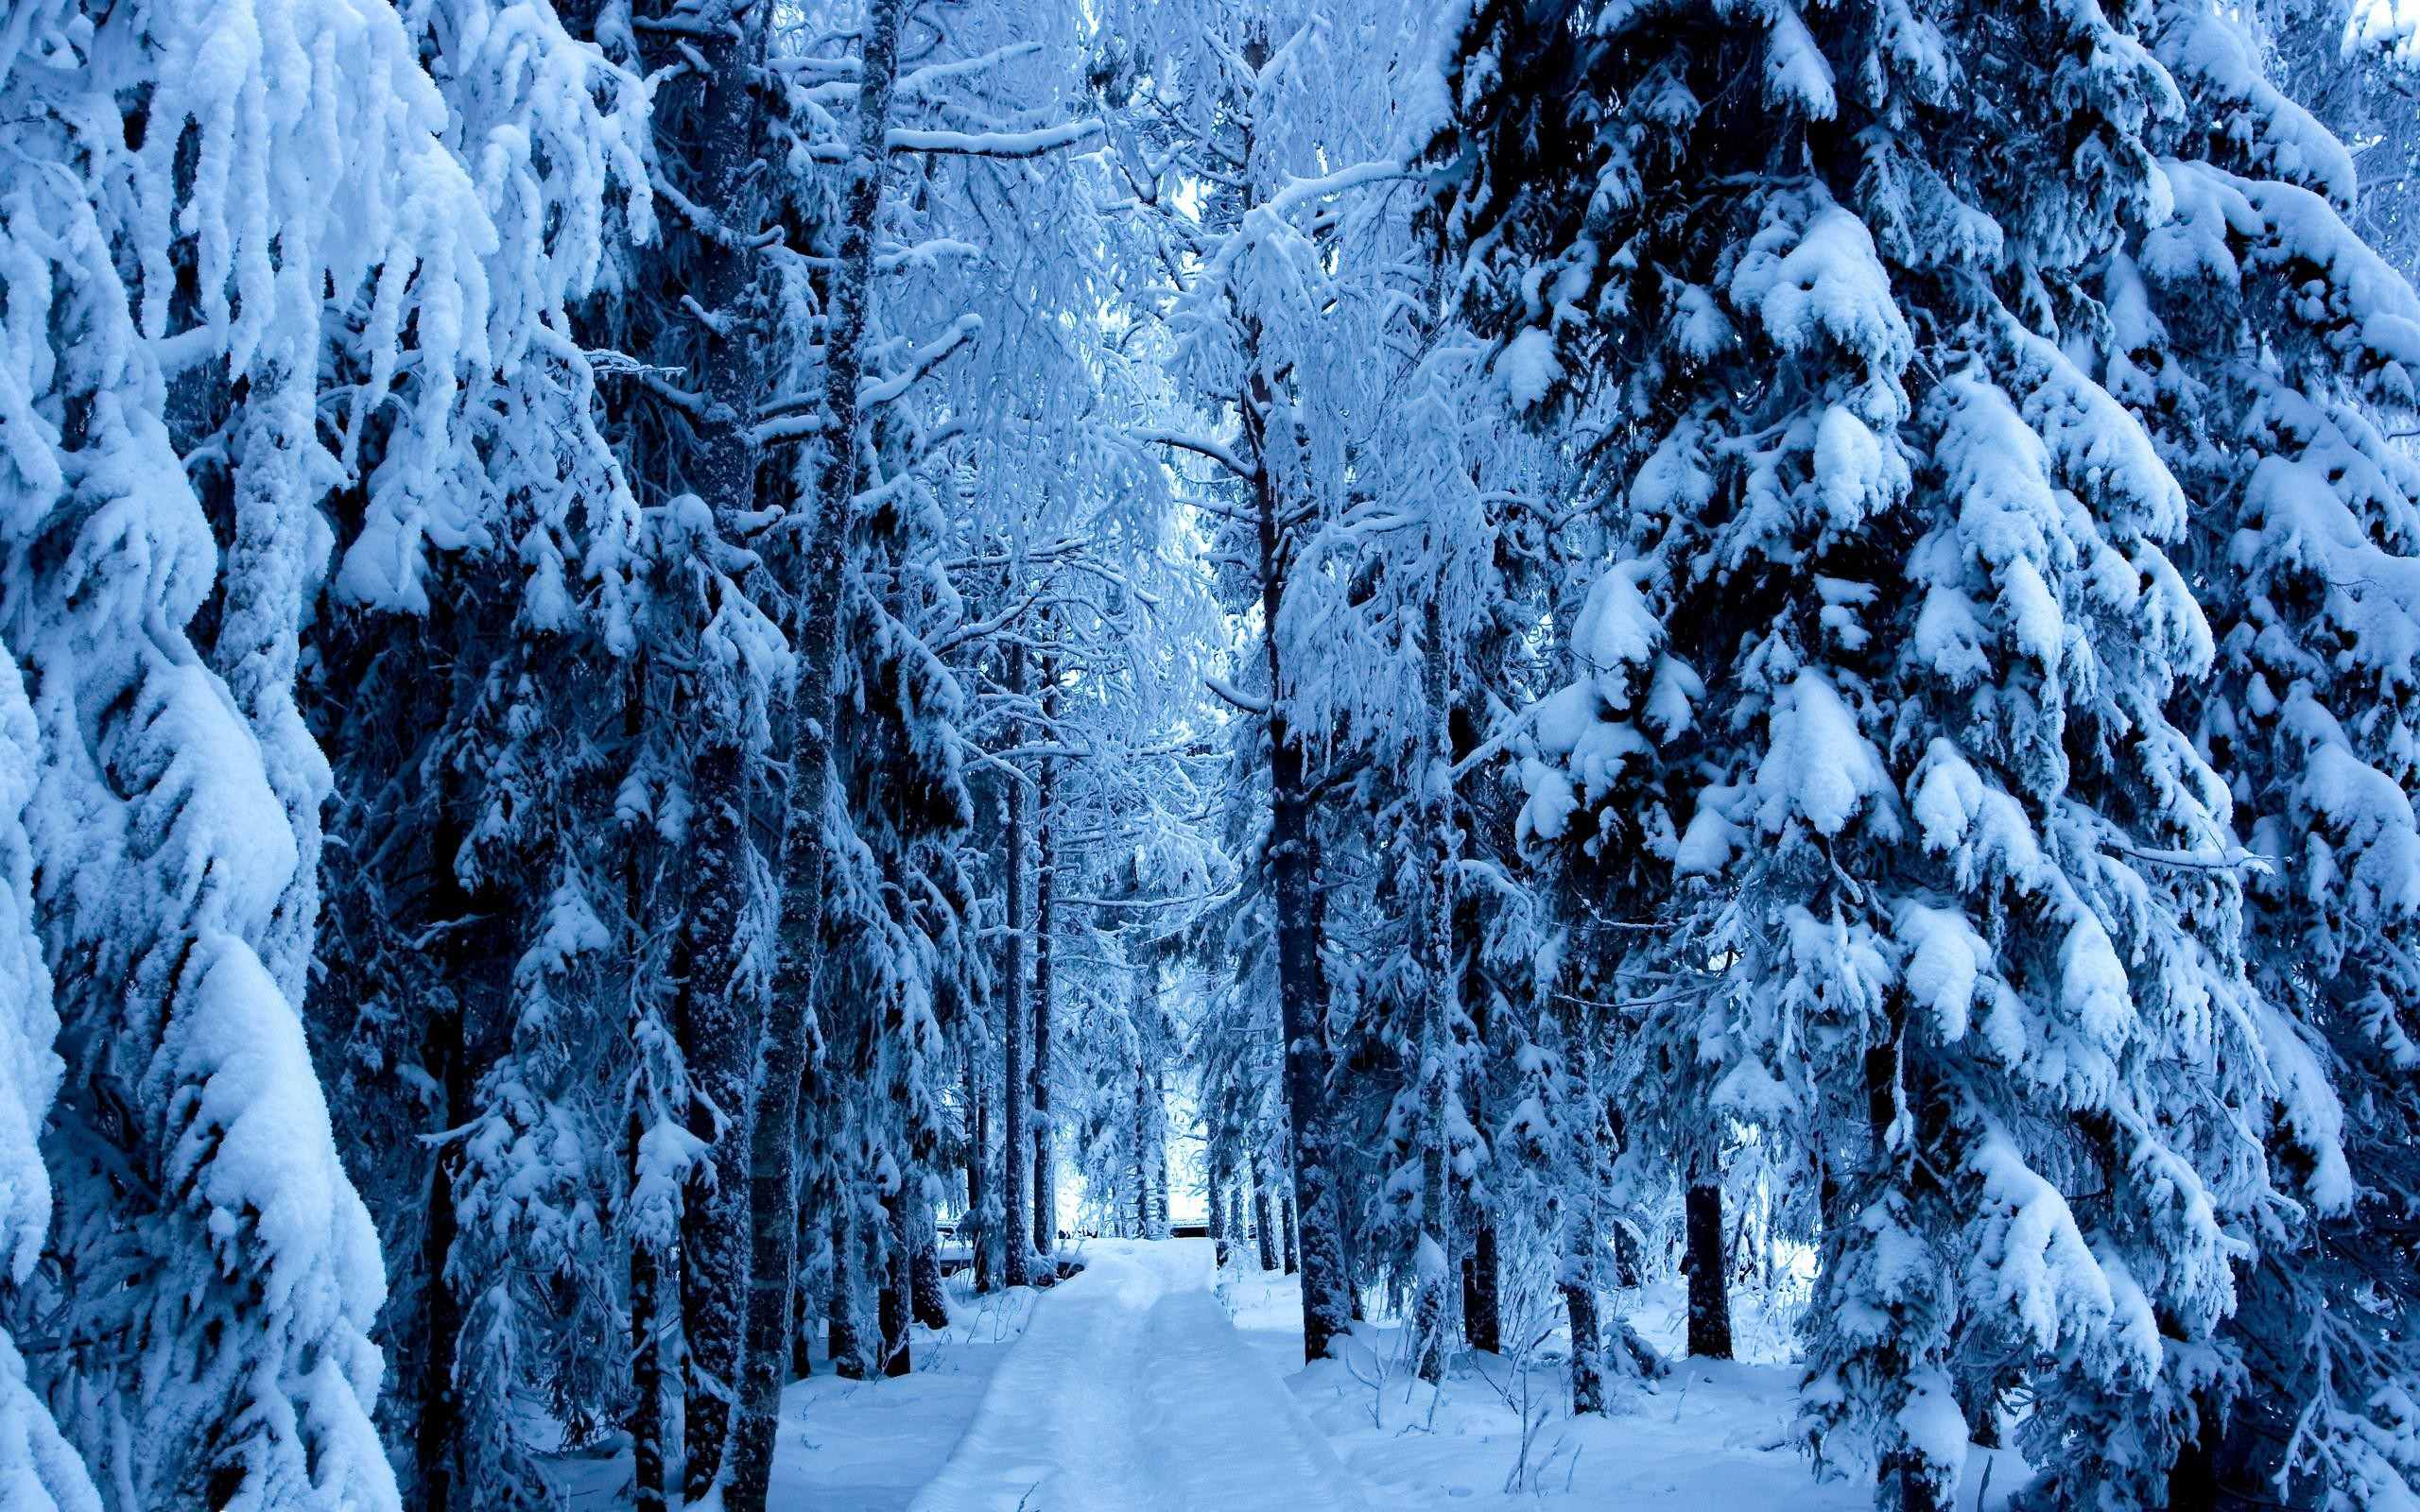 2560x1600 awesome nature winter snow trees for android wallpaper Check more at  http://www